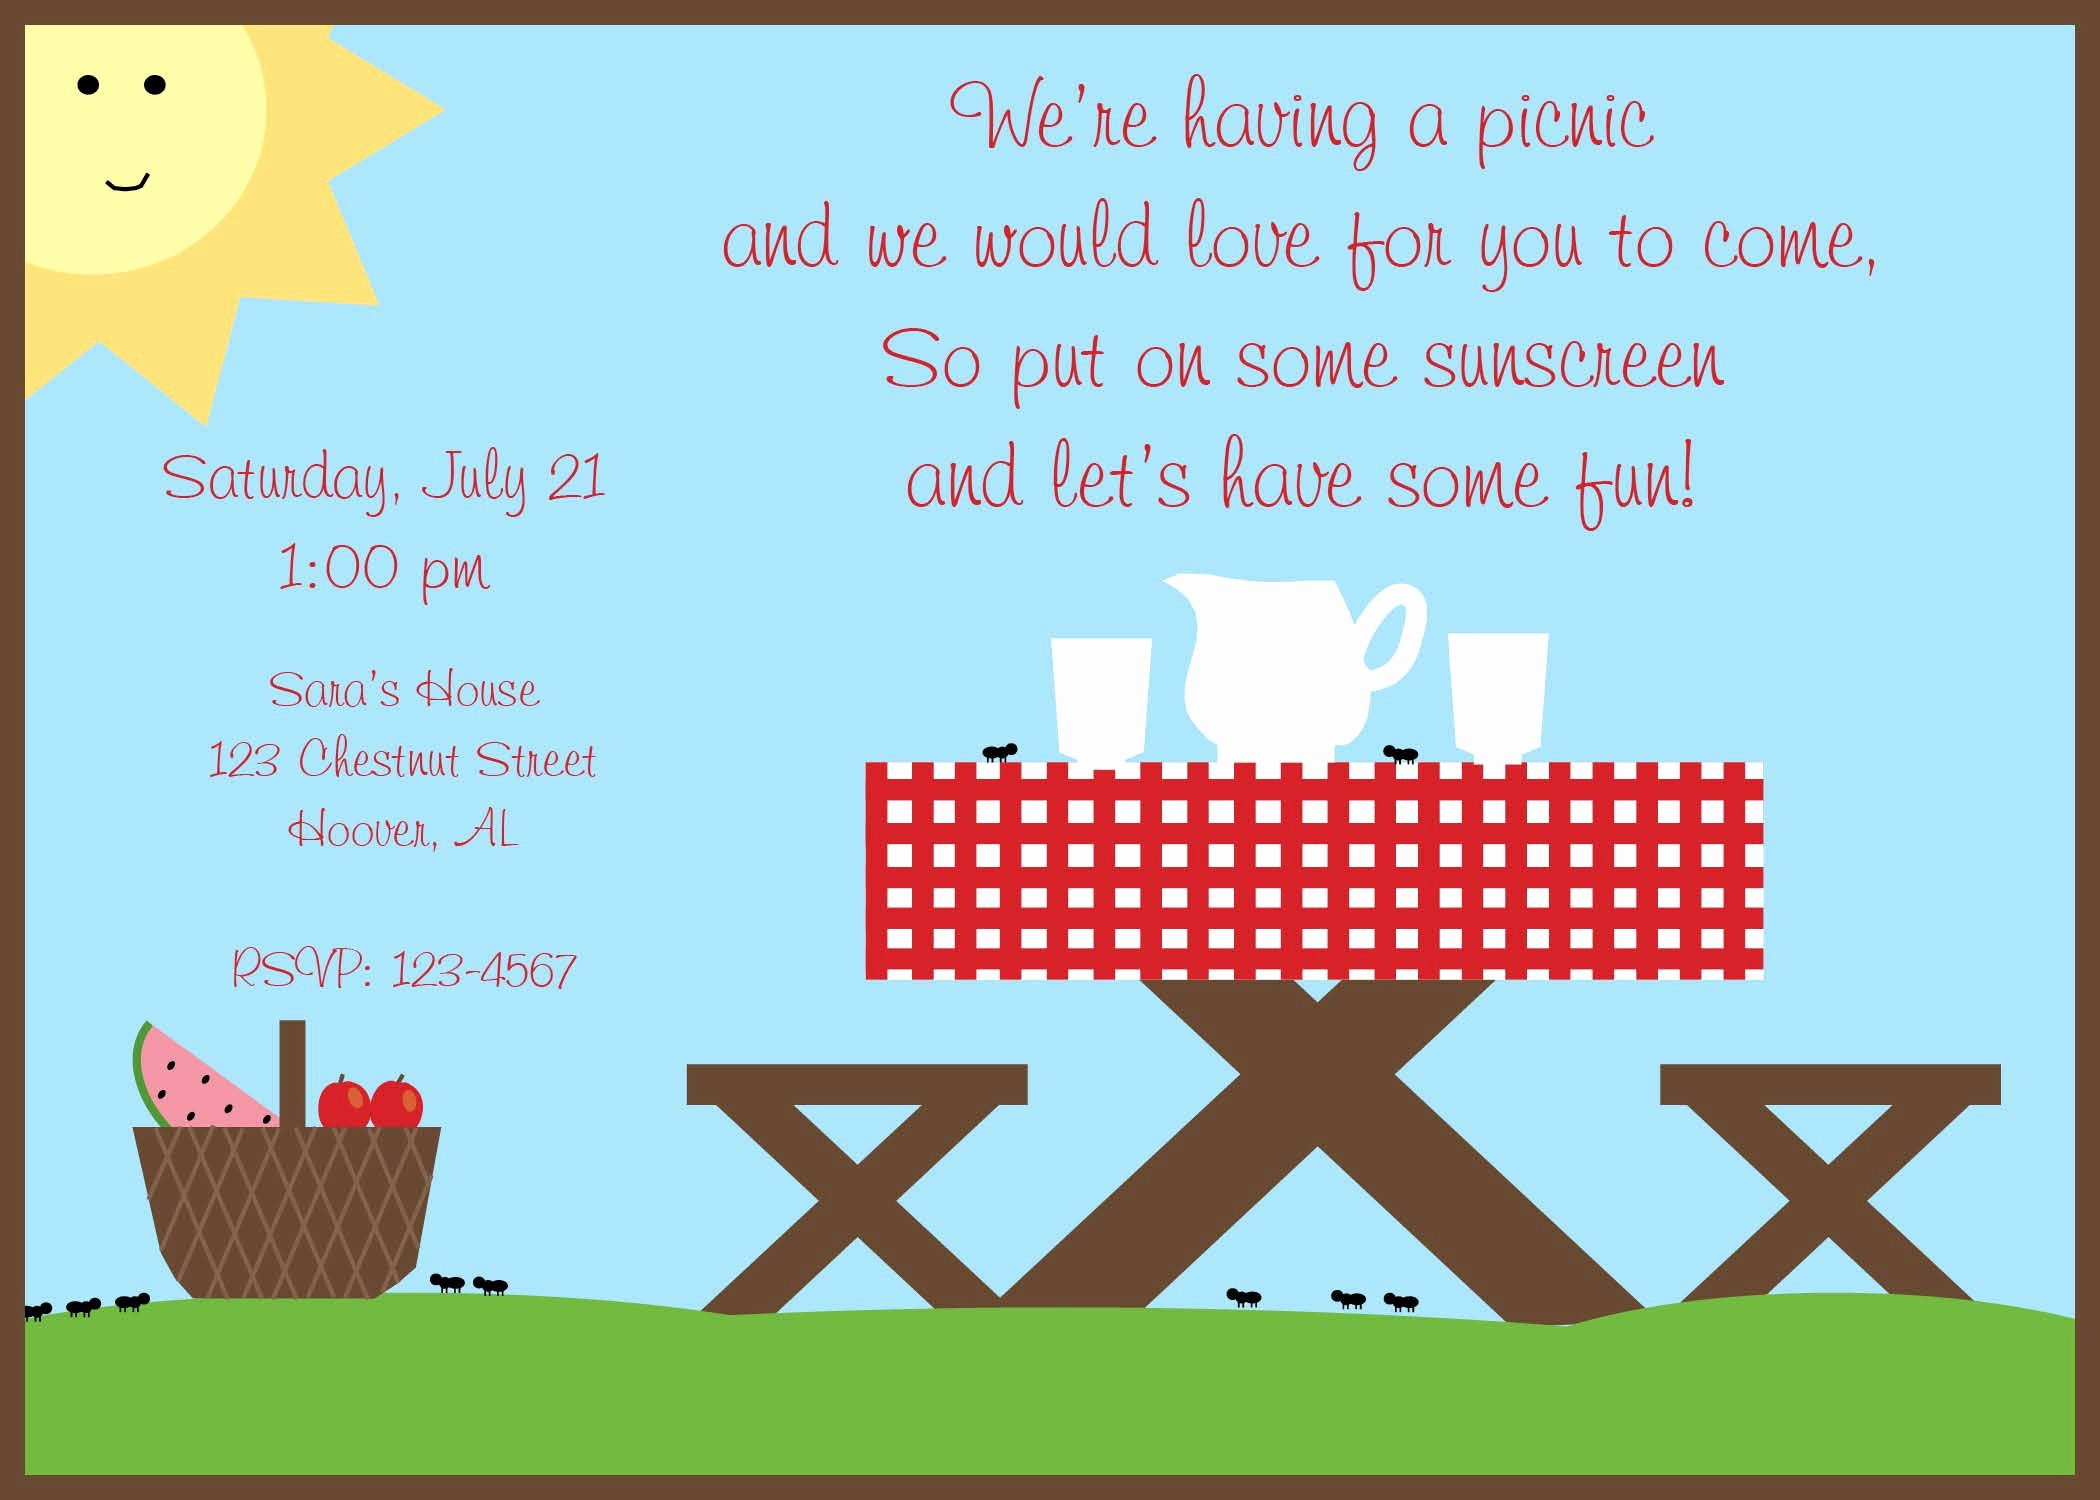 Picnic Invitation Template Free Best Of Summer Picnic Invitation Summer Party by Lilypadboutiquestore